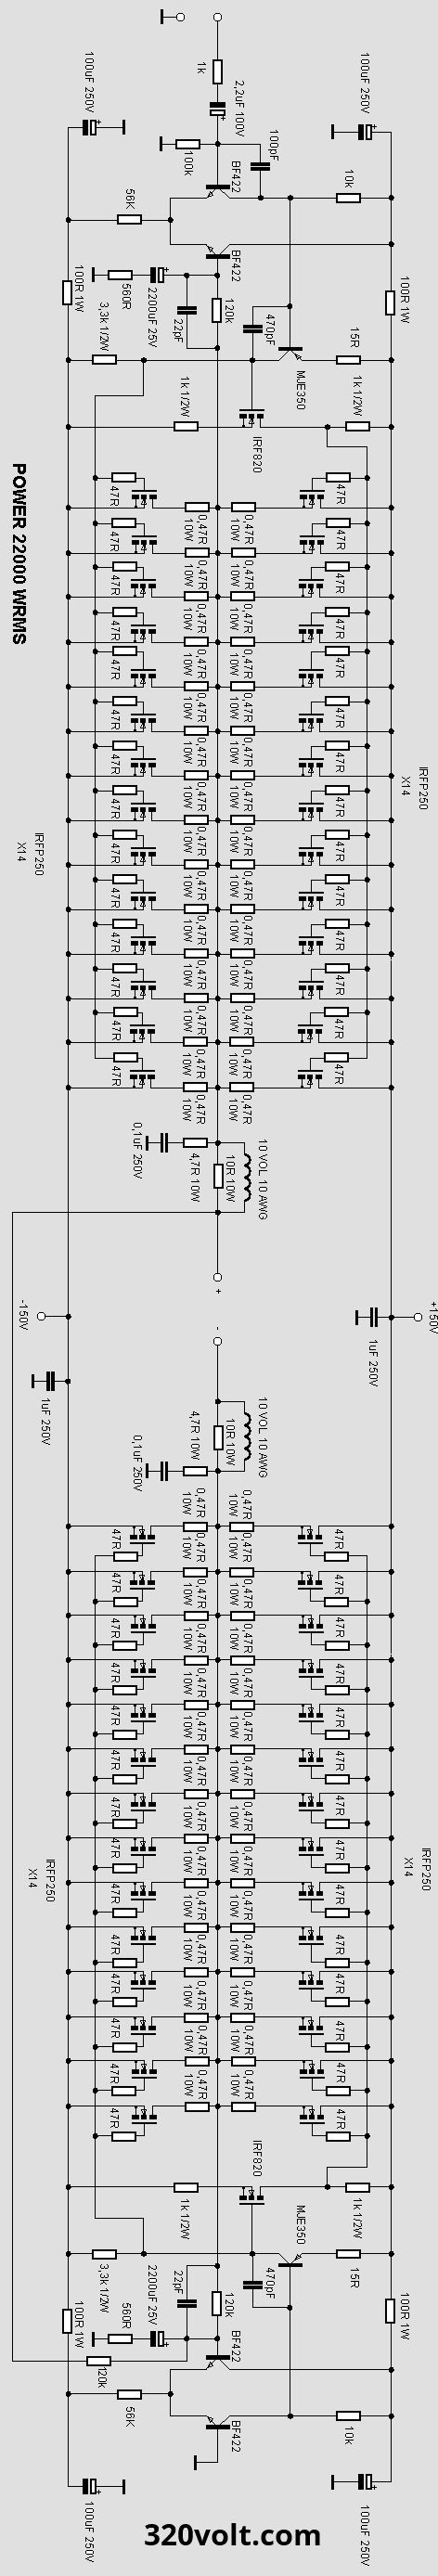 medium resolution of  wrg 0912 1000 watts amplifier circuit diagrams